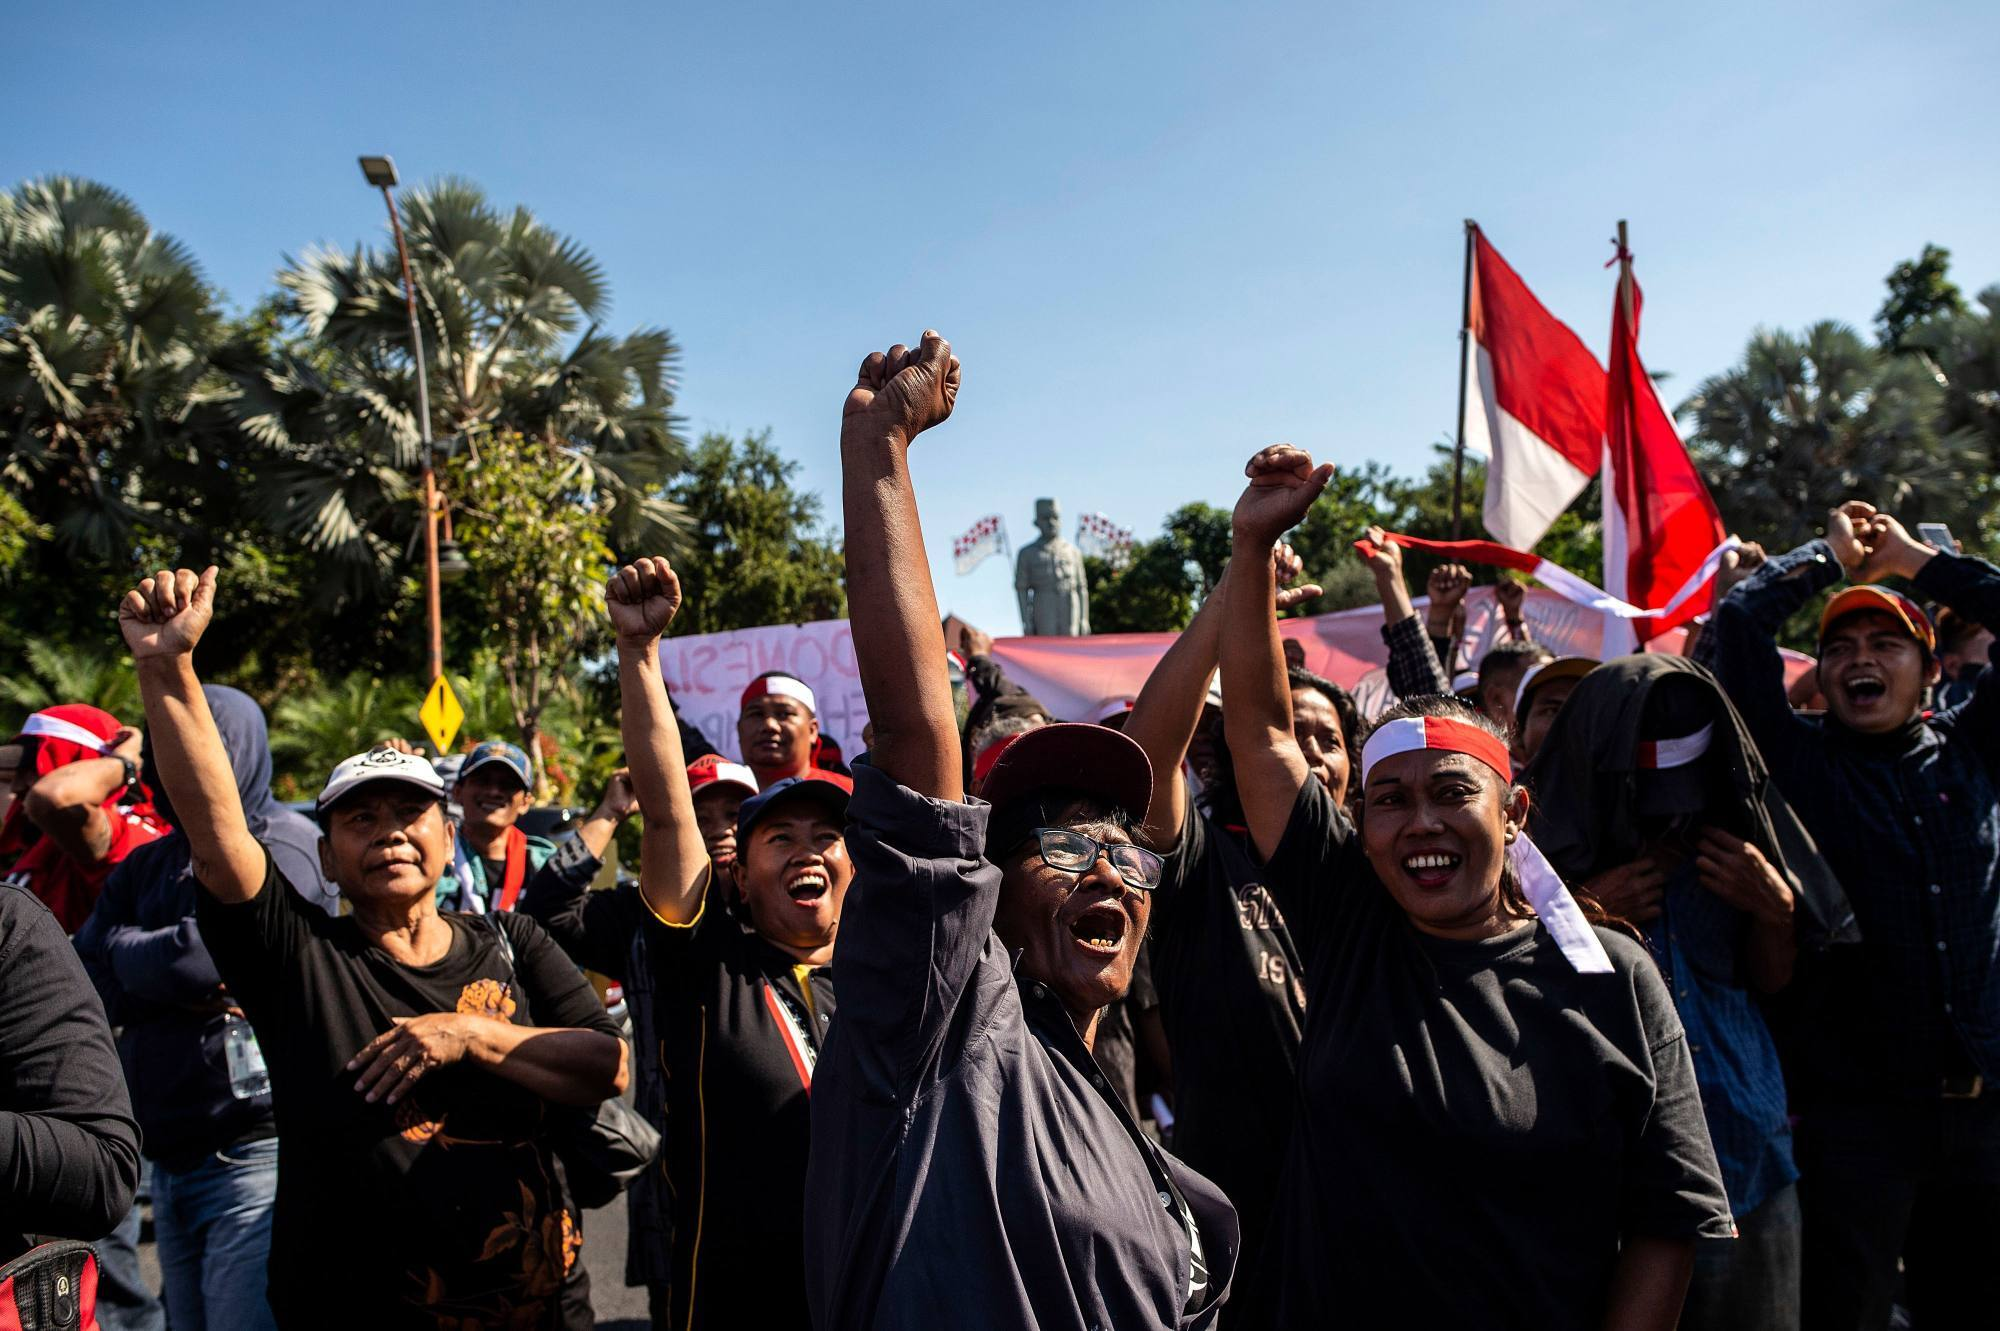 Indonesian activists gather in Surabaya in Indonesia's Papua region during protests in 2019. Photo: AFP